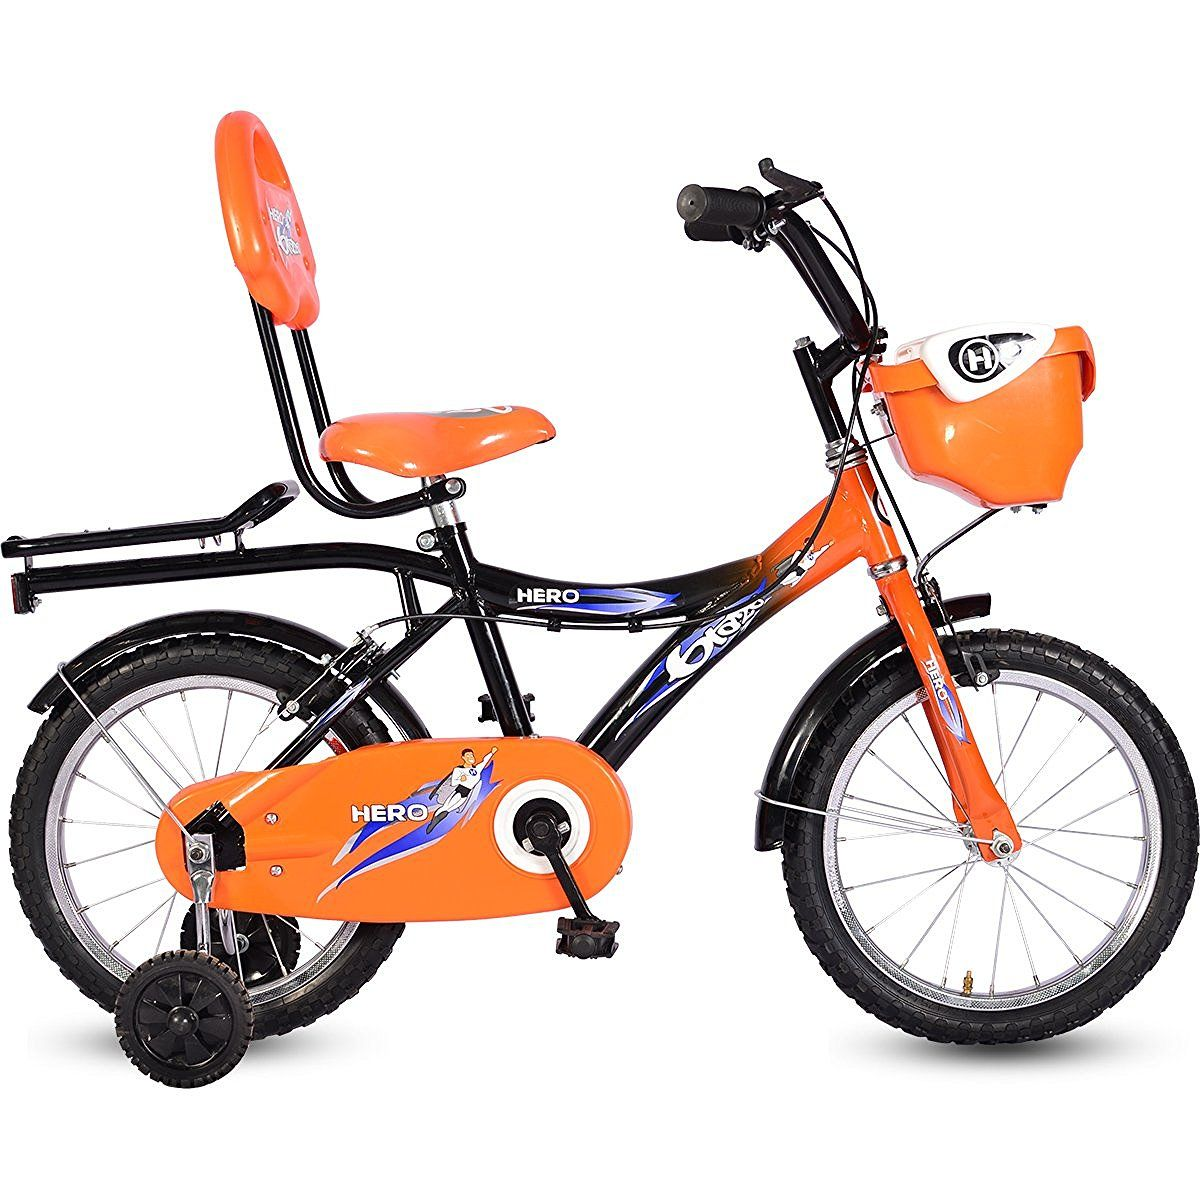 63ebf42c198 Best Baby Bicycle for 3 4 5 6 year old kids Hero Kid Zone Blaze 16T Junior  Cycle (Black Orange)